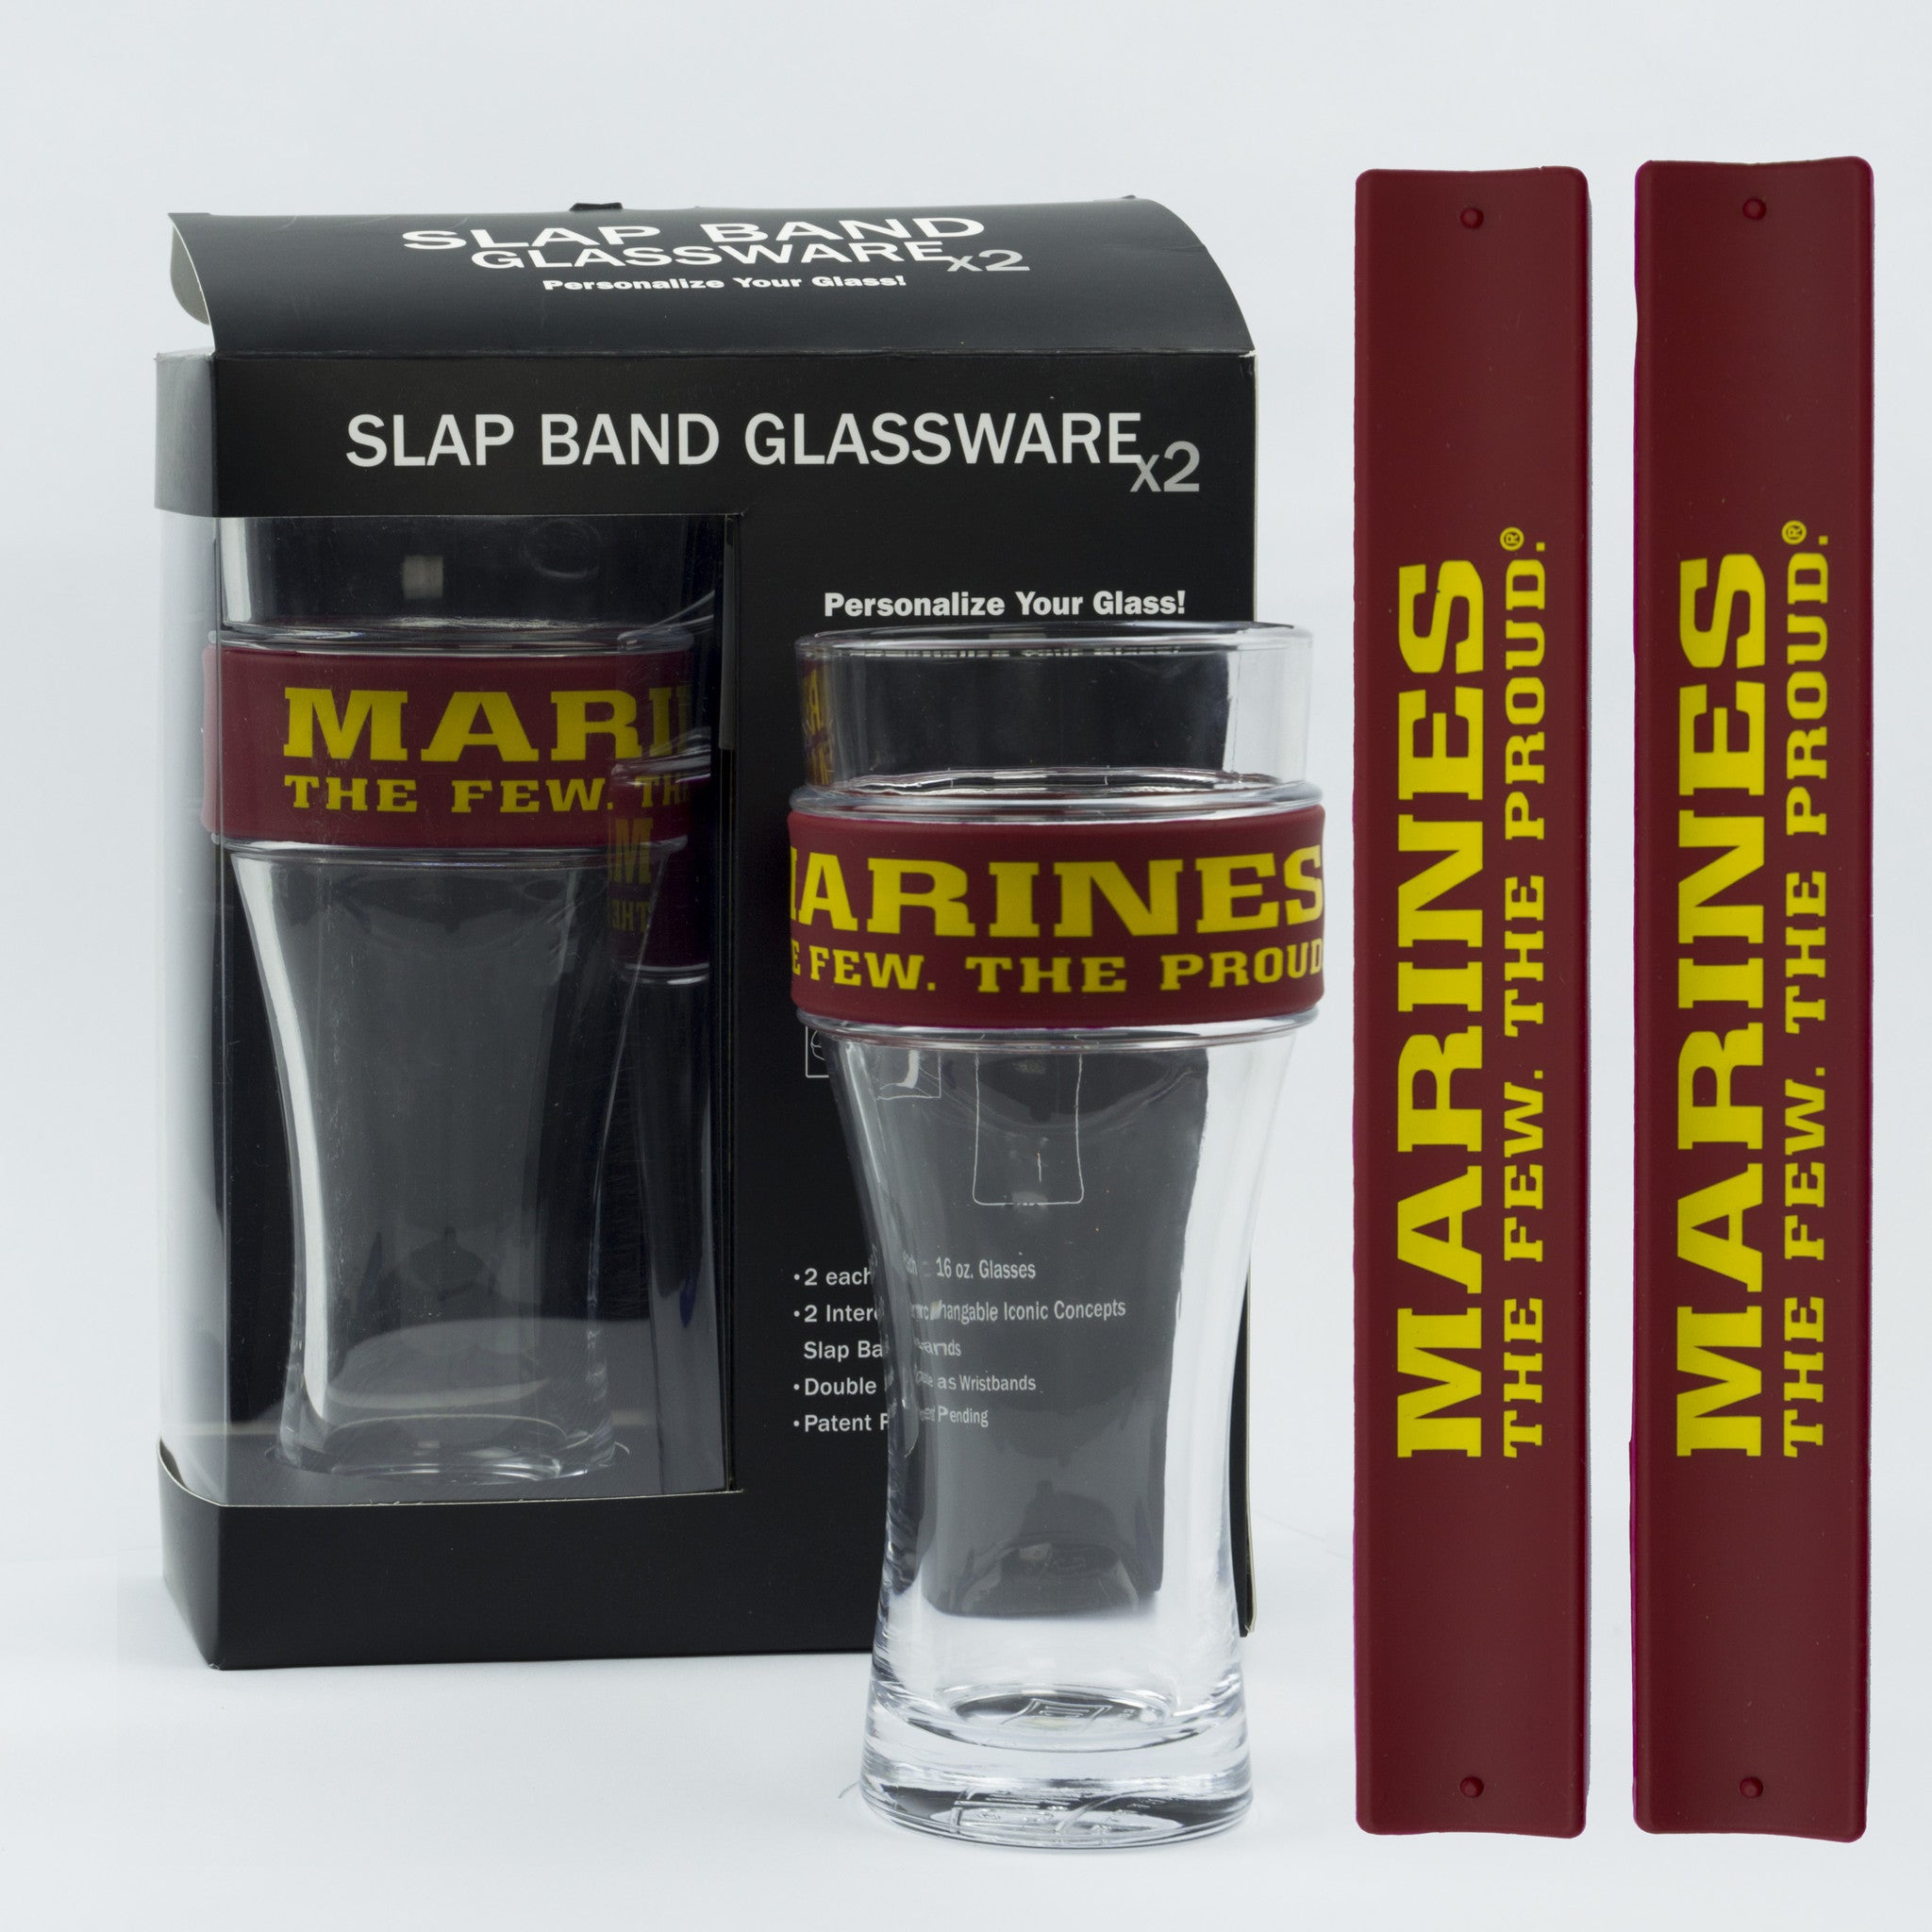 Military Slap Band Glassware - Marines